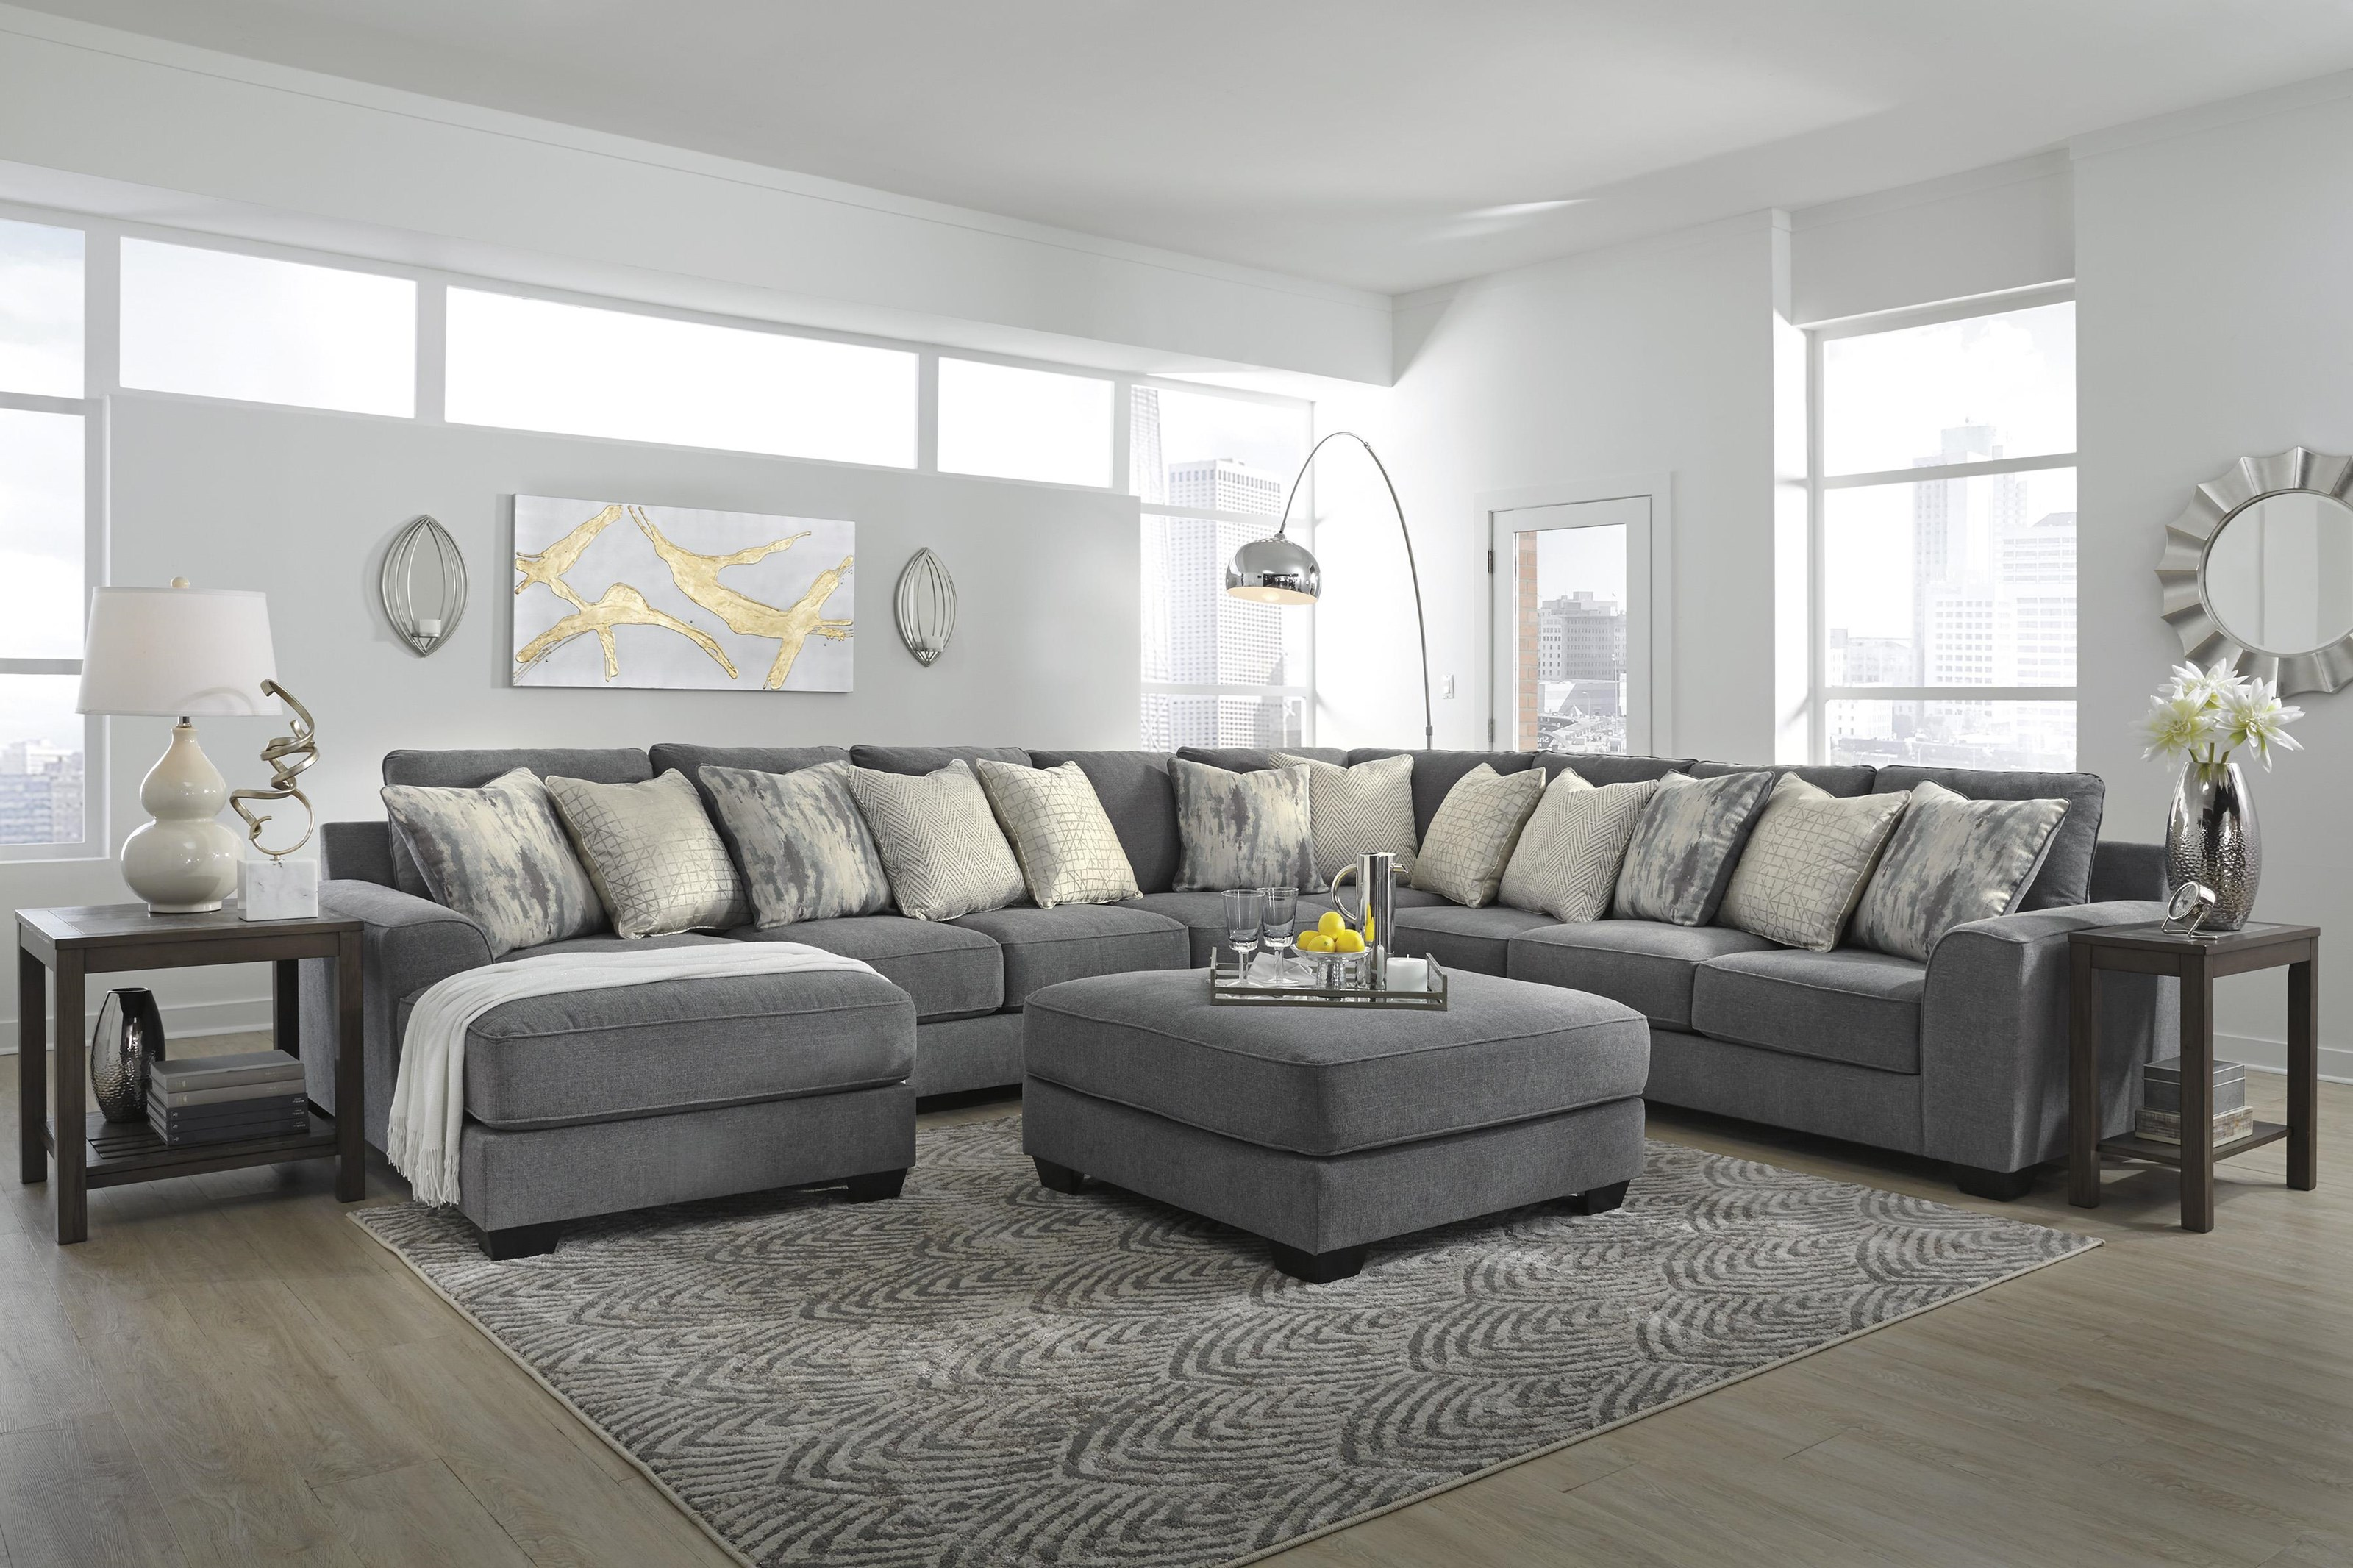 5 Piece Sectional with Ottoman